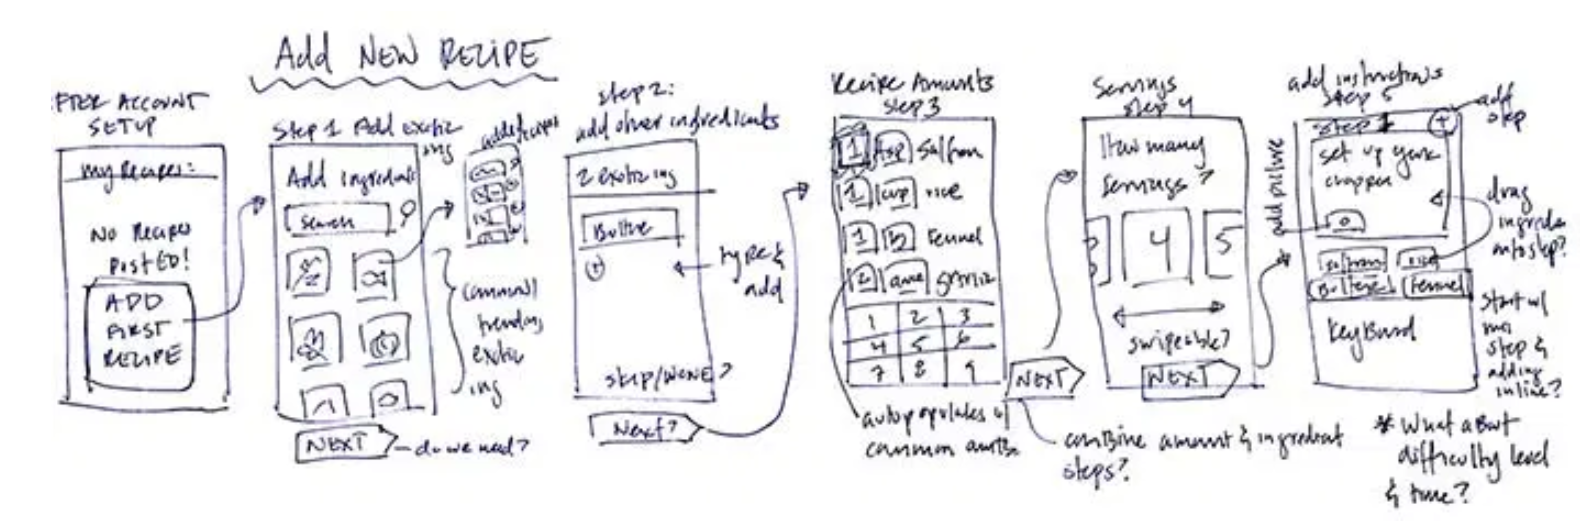 Pre-OOUX, my initial design-thinking would look something like this. I'd figure out the interaction design while figuring out what a recipe actually should be.